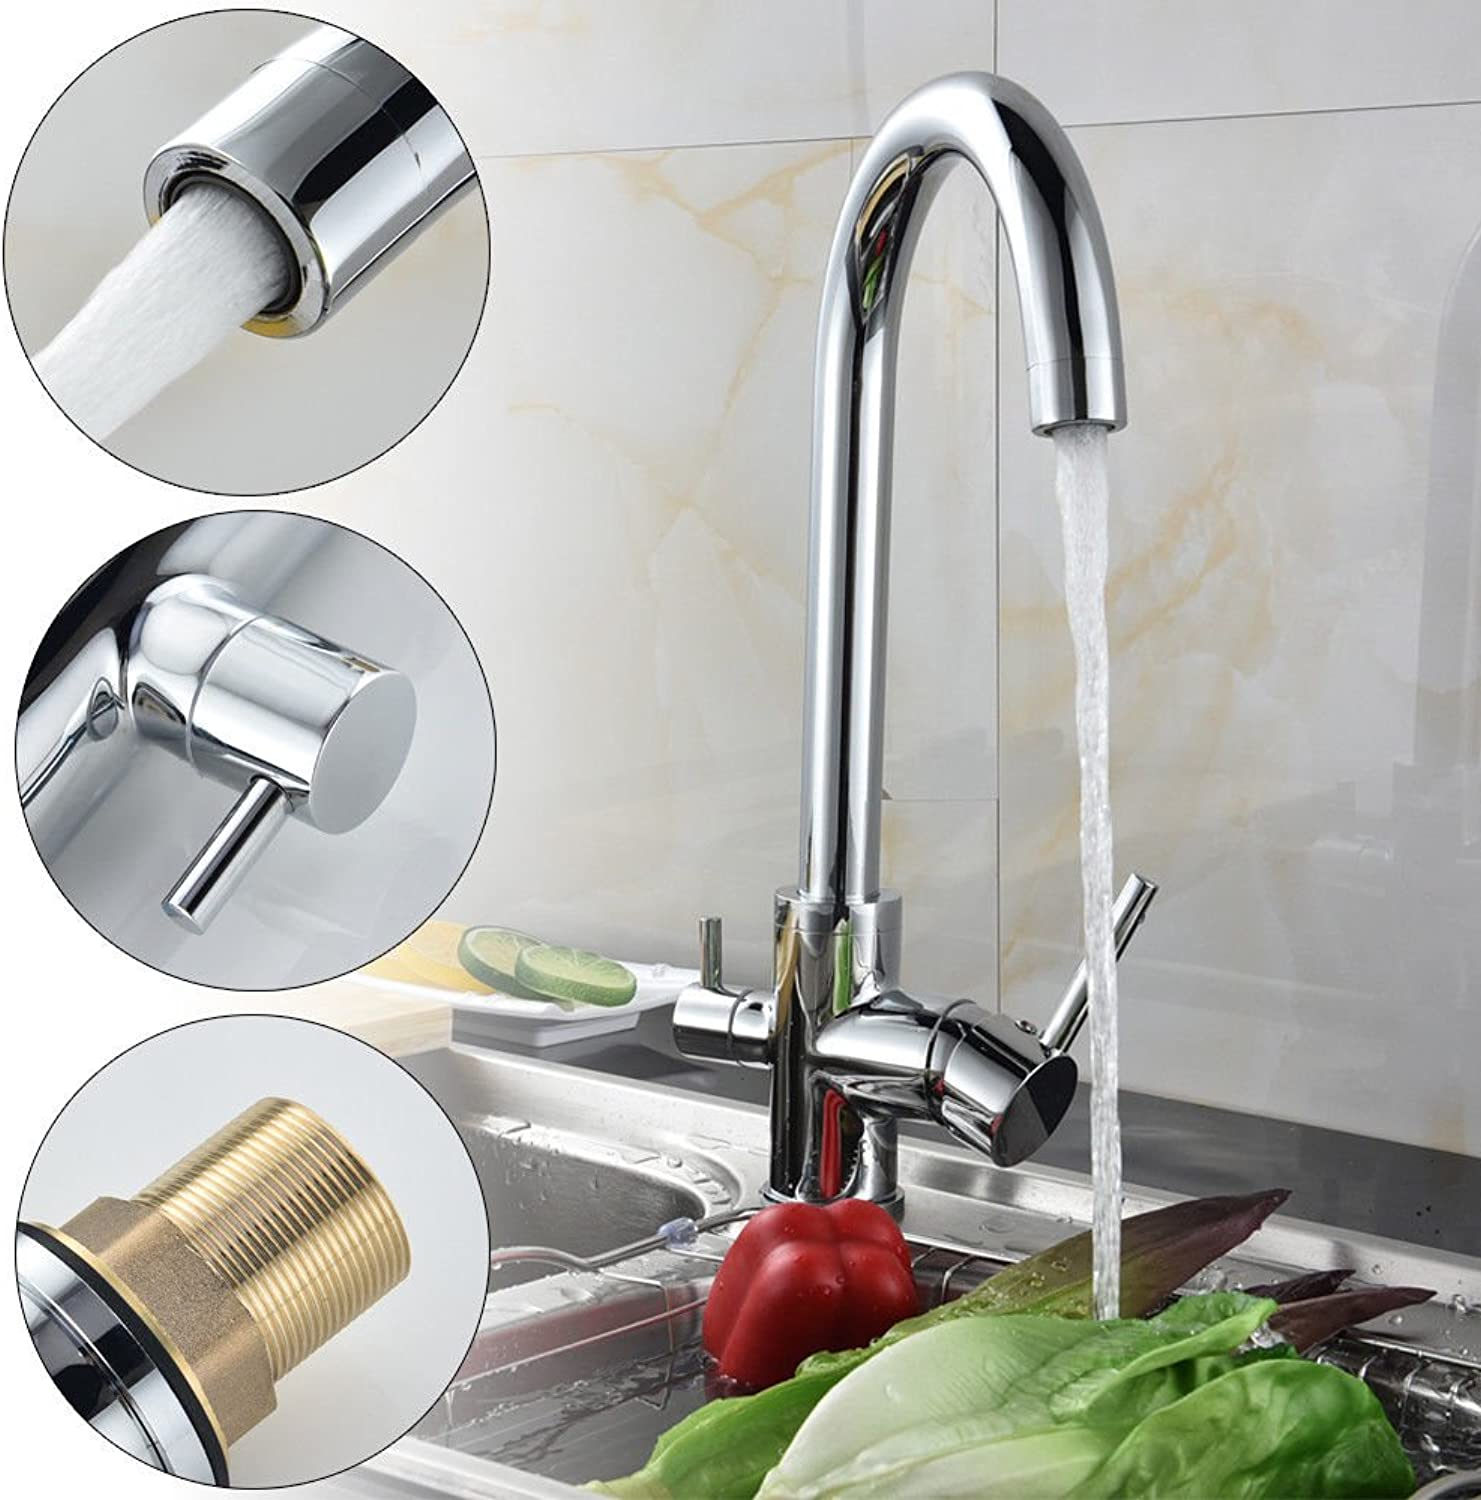 OUKANING 3-Way Drinking Tap Fitting for Water Filter Tap Kitchen Kitchen Tap Lever 360° redatable Mixer Tap Sink Filter System Sink Tap Water Crane